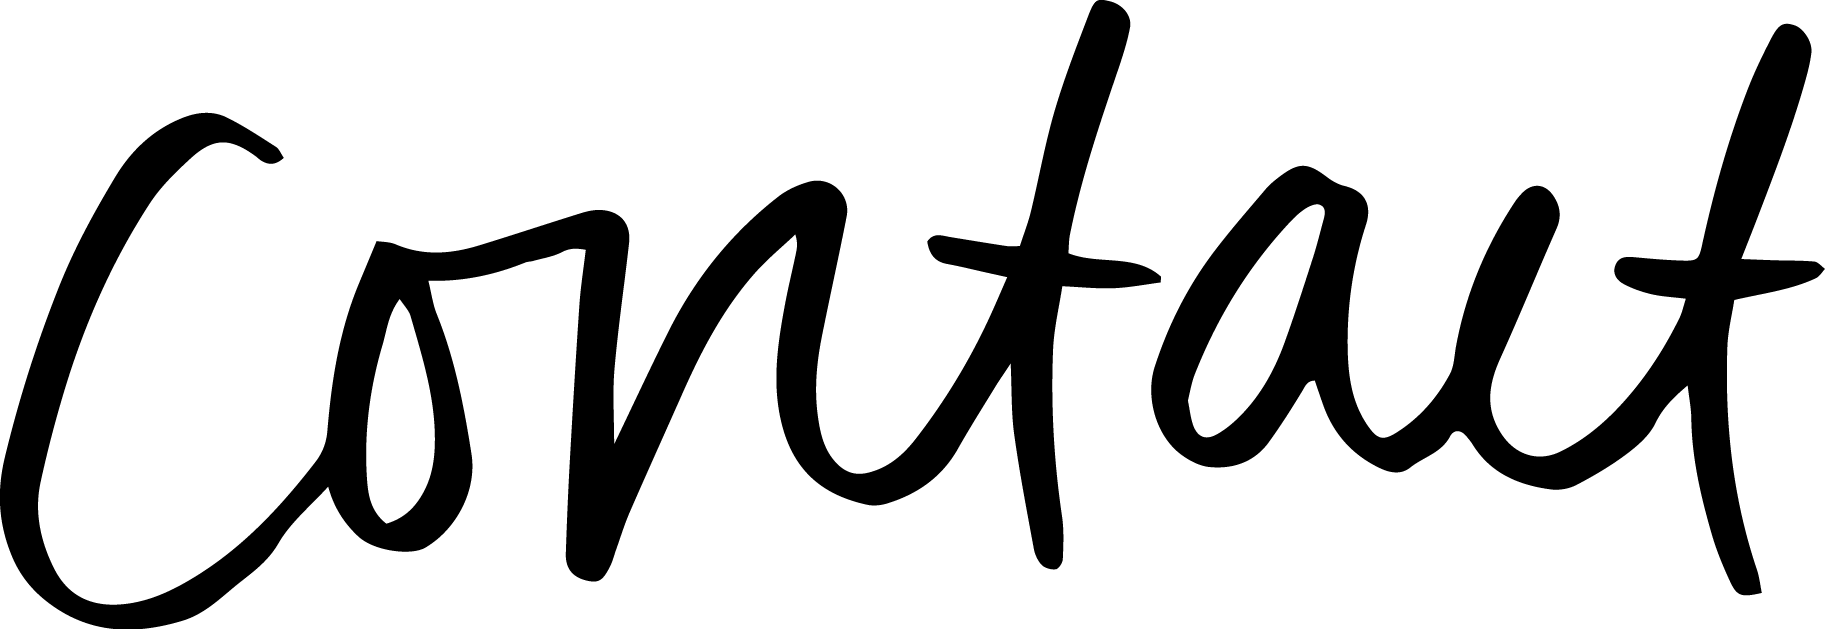 LACYLETTERING-16.png